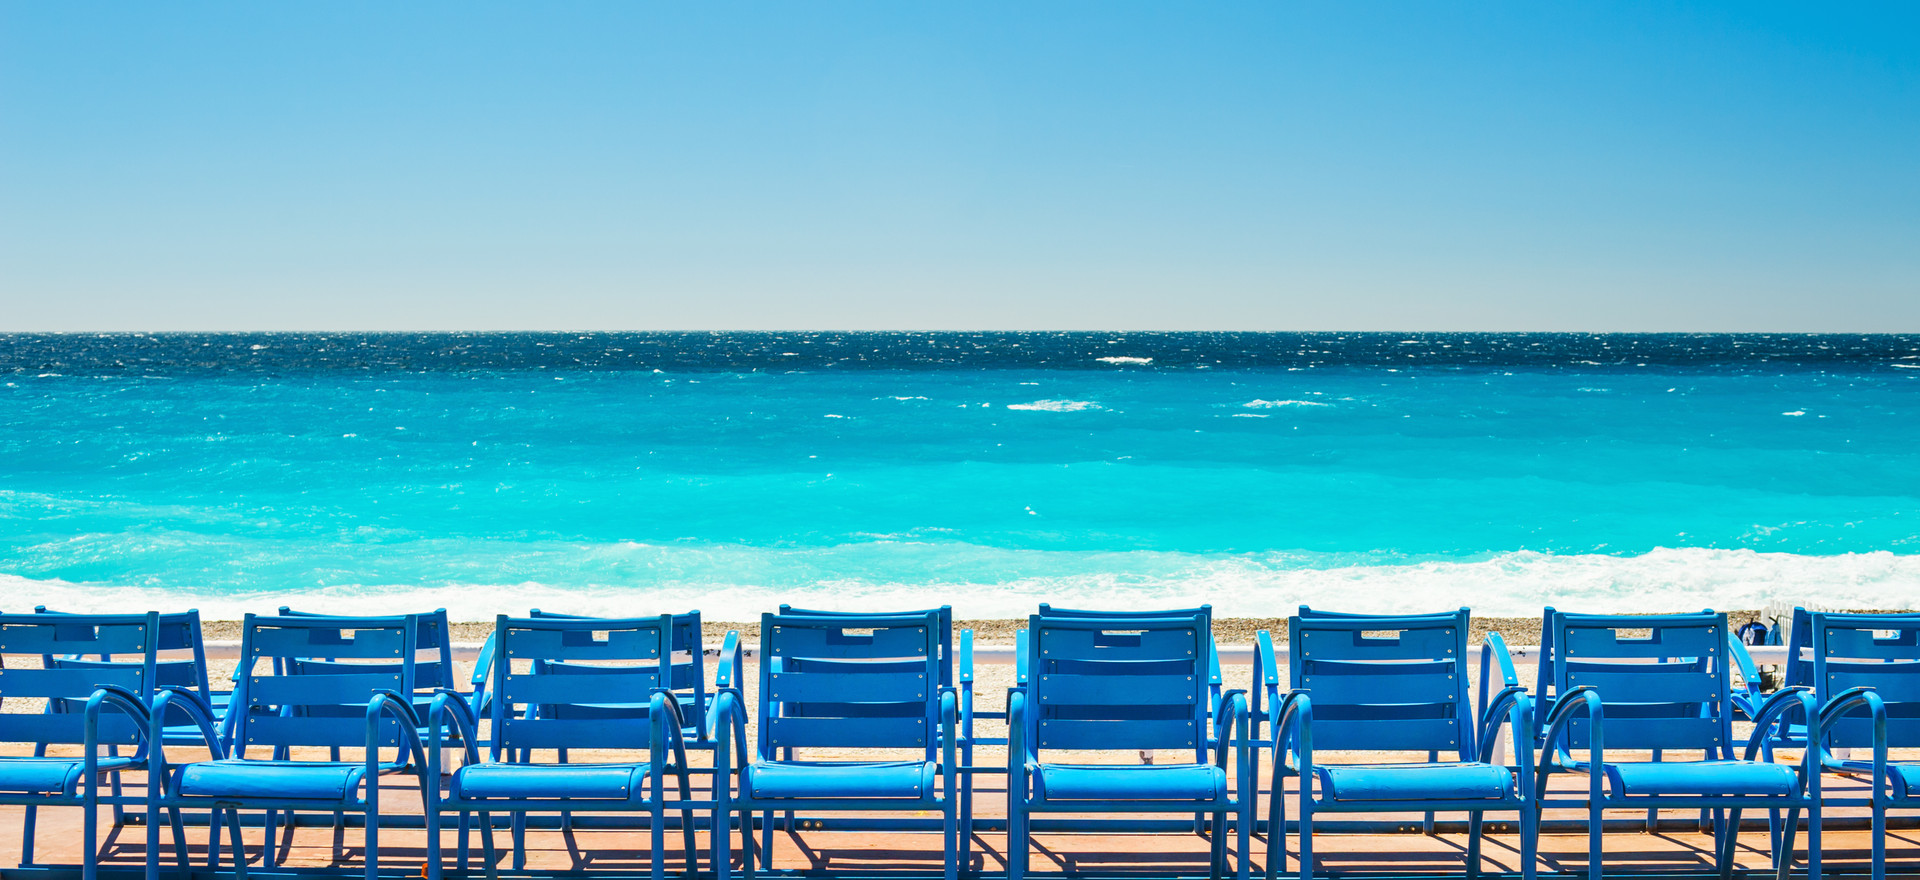 Blue chairs on the Promenade des Anglais